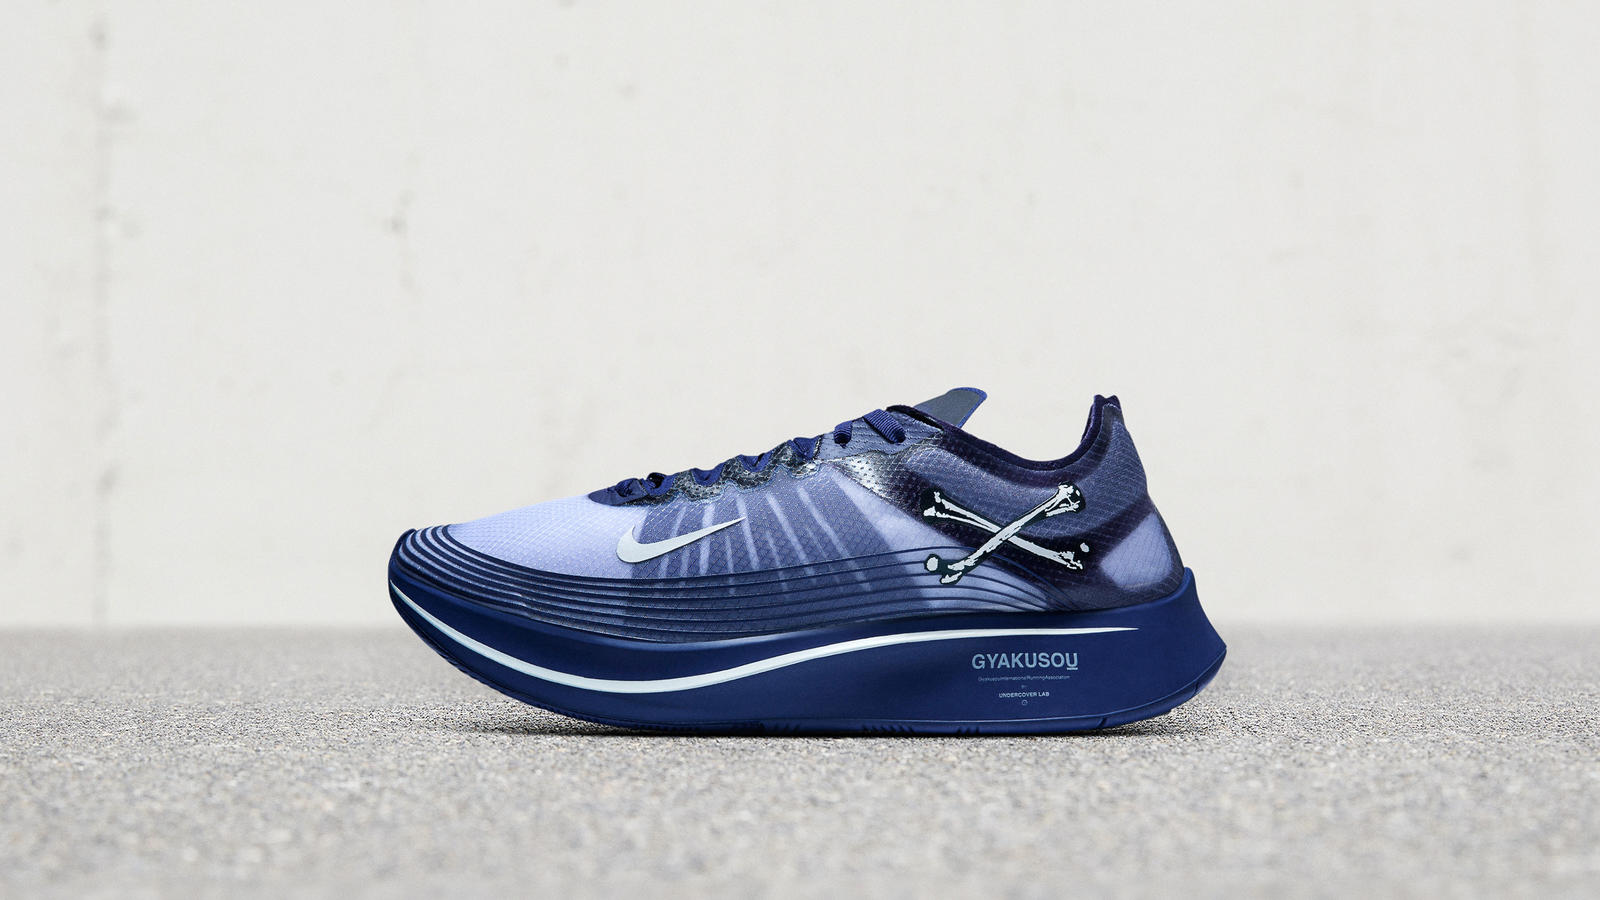 Featuredfootwear zoomfly gyakusou 259 re hd 1600